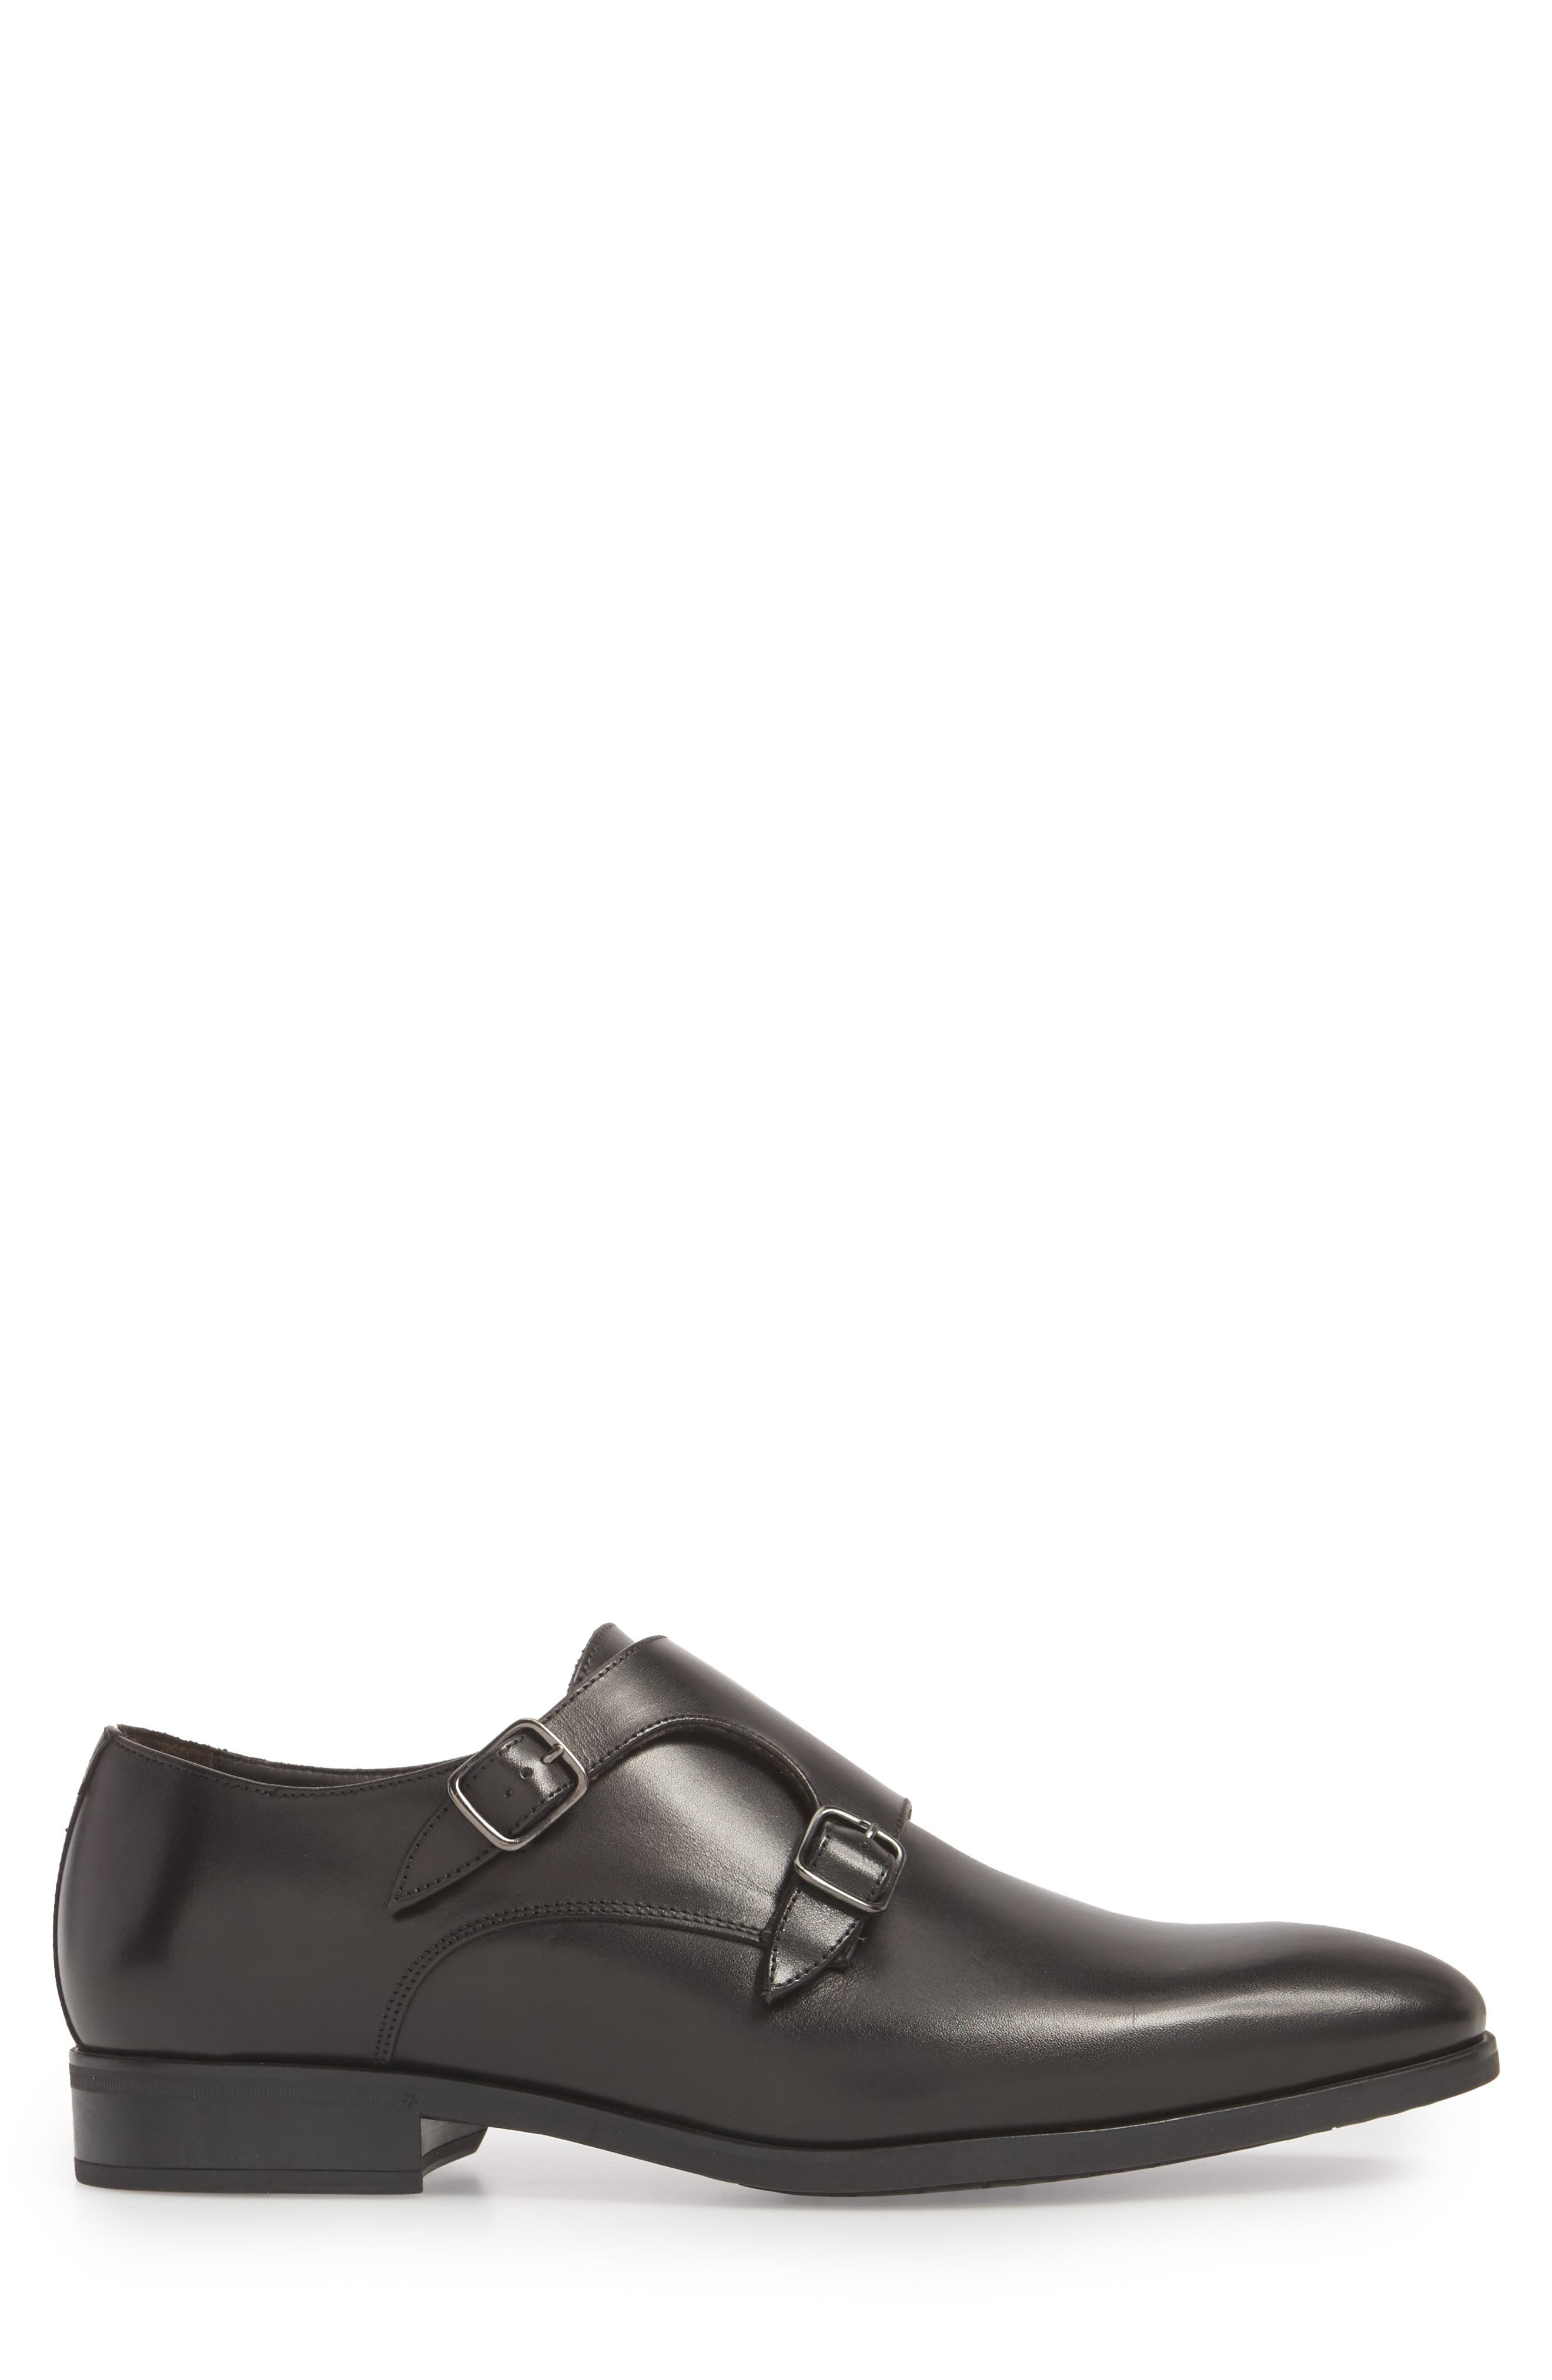 TO BOOT NEW YORK, Benjamin Double Monk Strap Shoe, Alternate thumbnail 3, color, 002